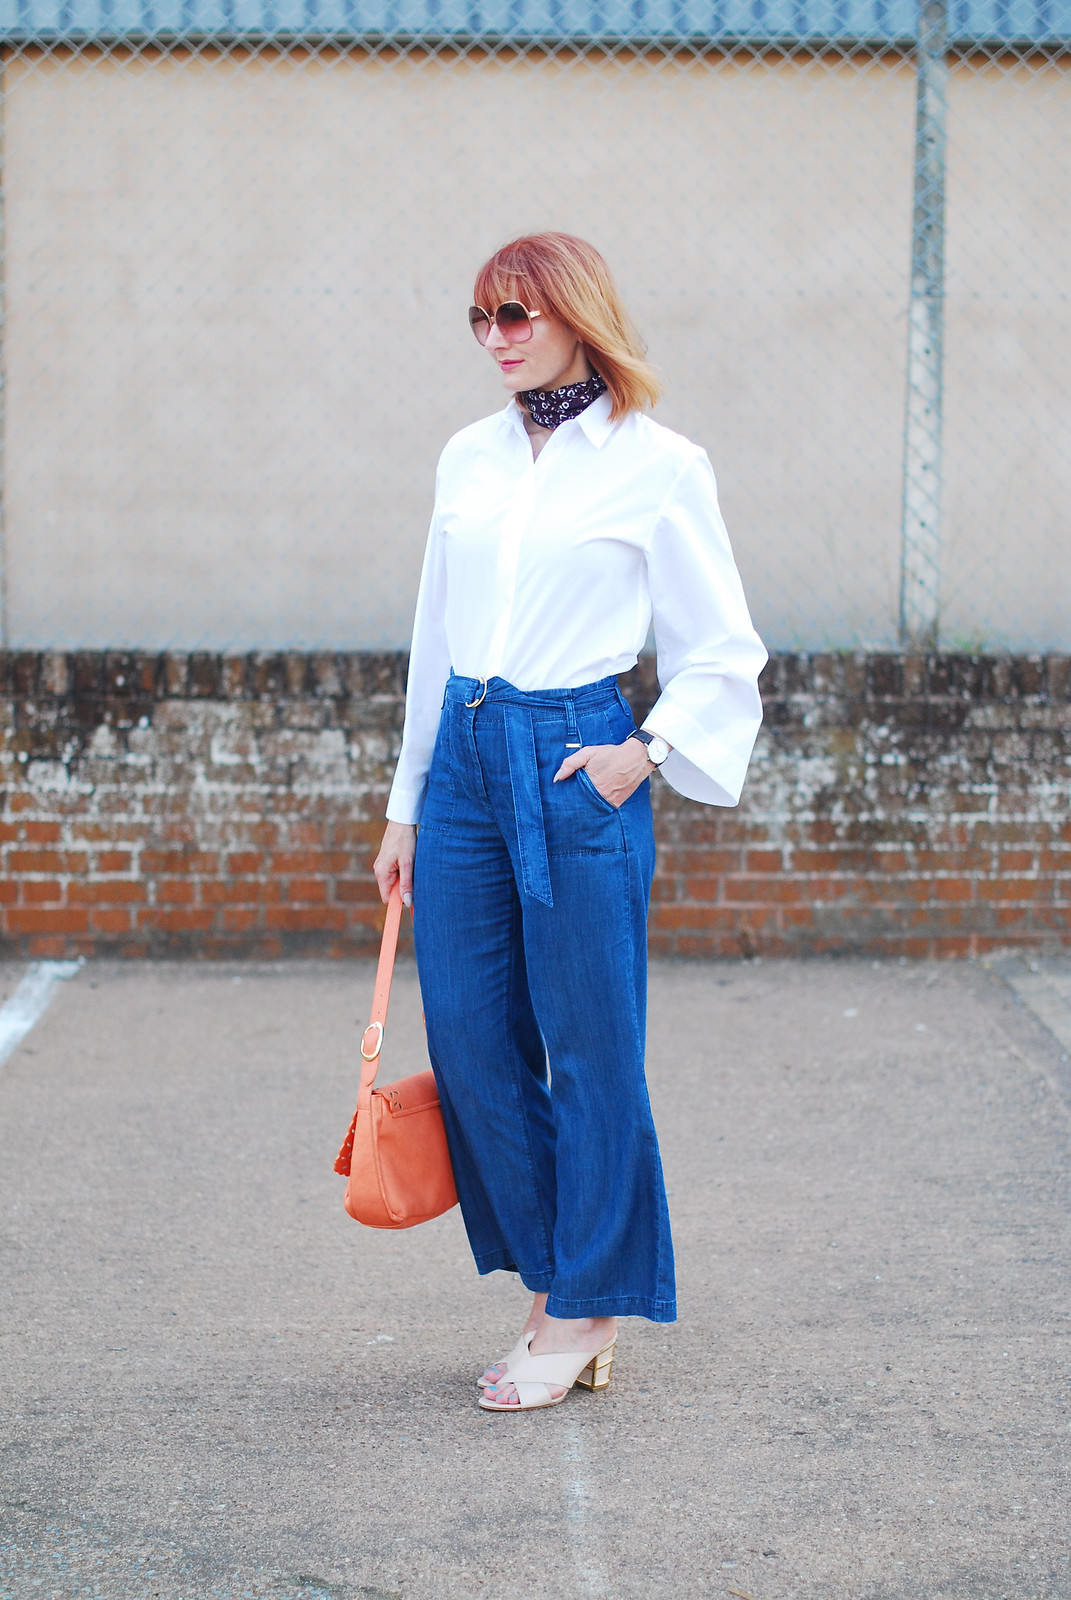 Styling a basic white top and denim: Marks & Spencer white bell-sleeve shirt and wide leg cropped jeans | Not Dressed As Lamb